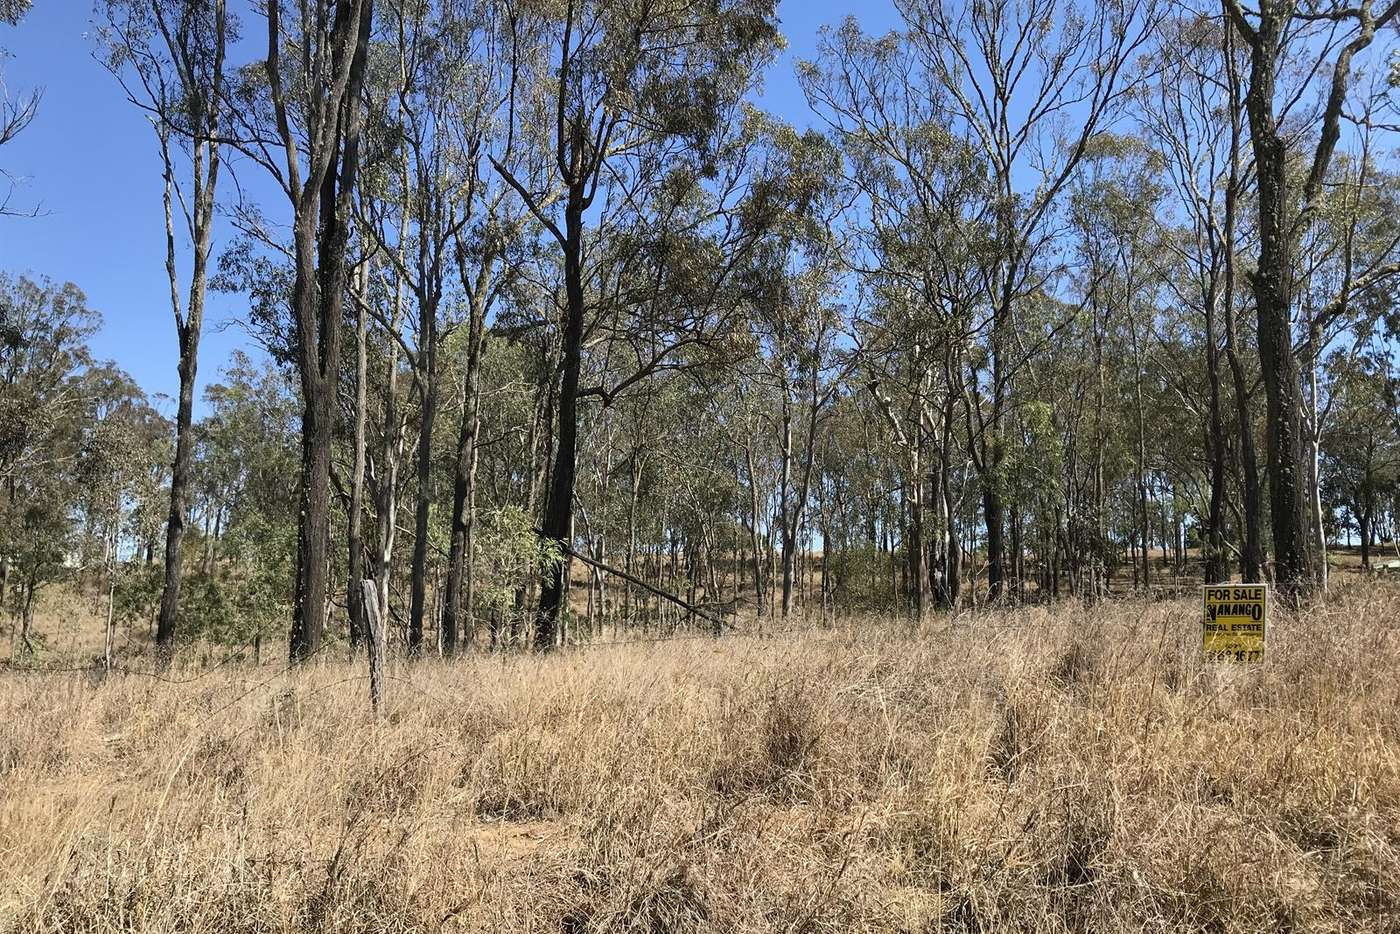 Main view of Homely residentialLand listing, Lot 3 Runnymede Estate Rd, Nanango QLD 4615